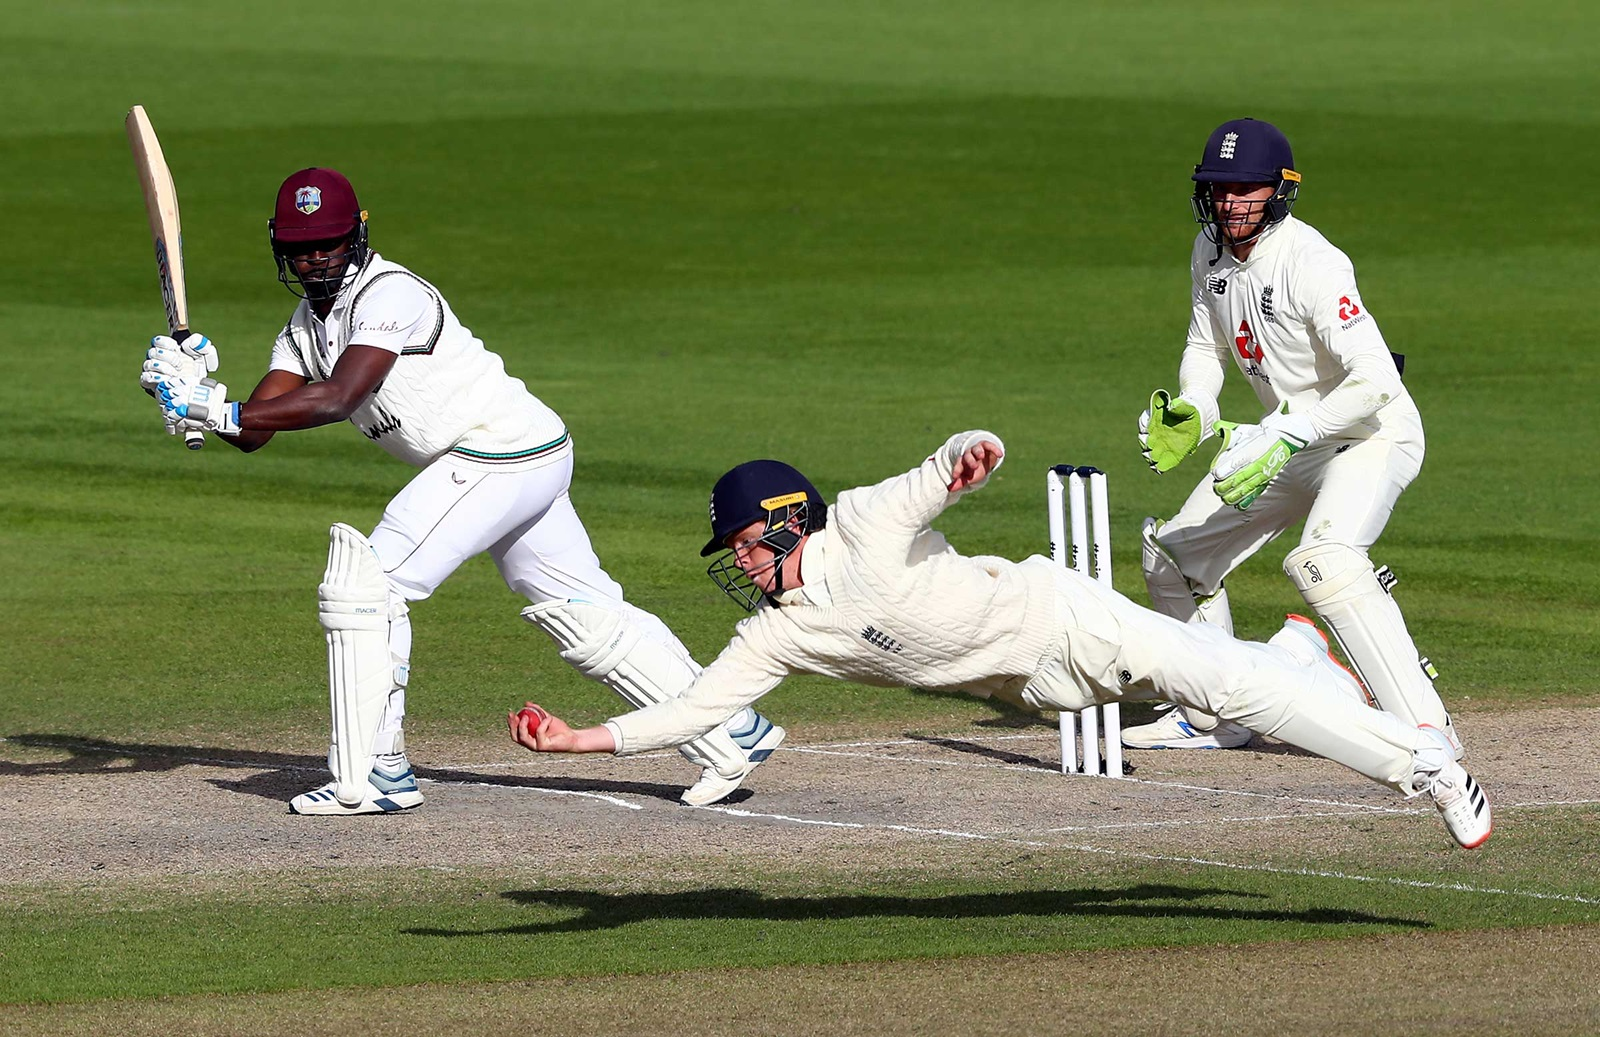 England leveled the series against West Indies